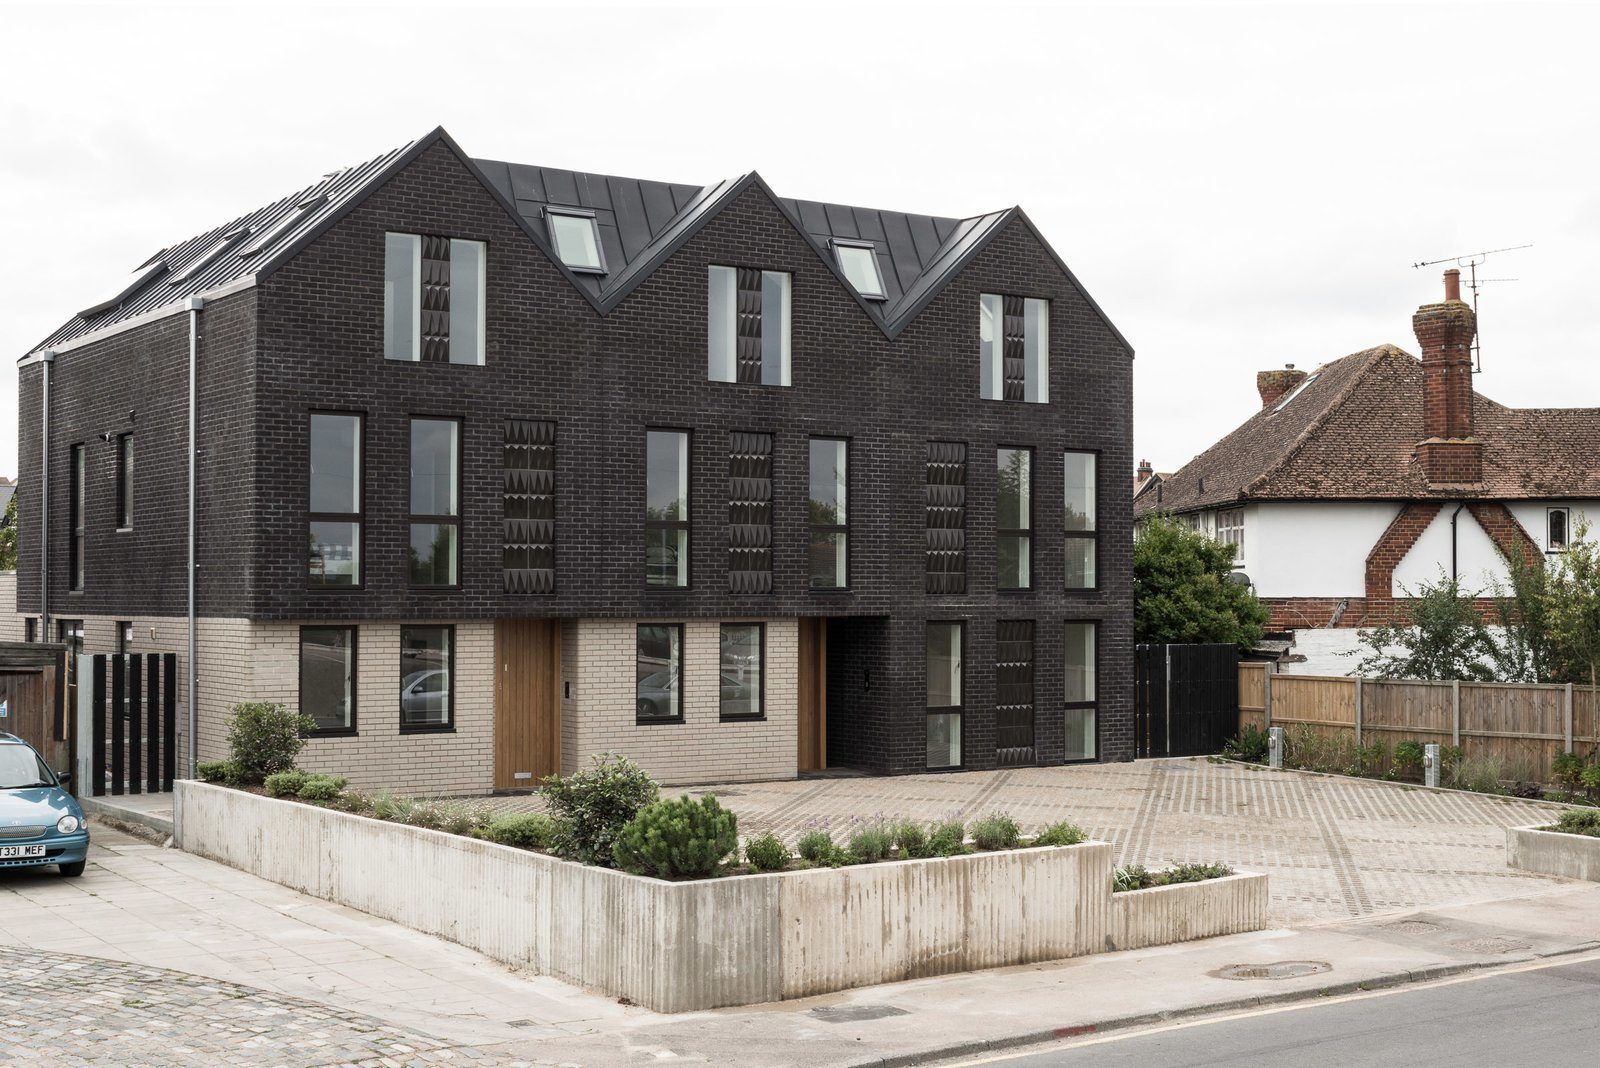 Located on the site of demolished old bungalows, Haddo Yard in Whitstable Kent now comprises of seven new-built apartments developed by Arrant Land and designed by celebrated UK practice Denizen Works. The building's facade has dark brick gables that echo the black timber sea front fishing huts in this part of Kent.  Photo 3 of 8 in 6 Best Dwell UK Apartments